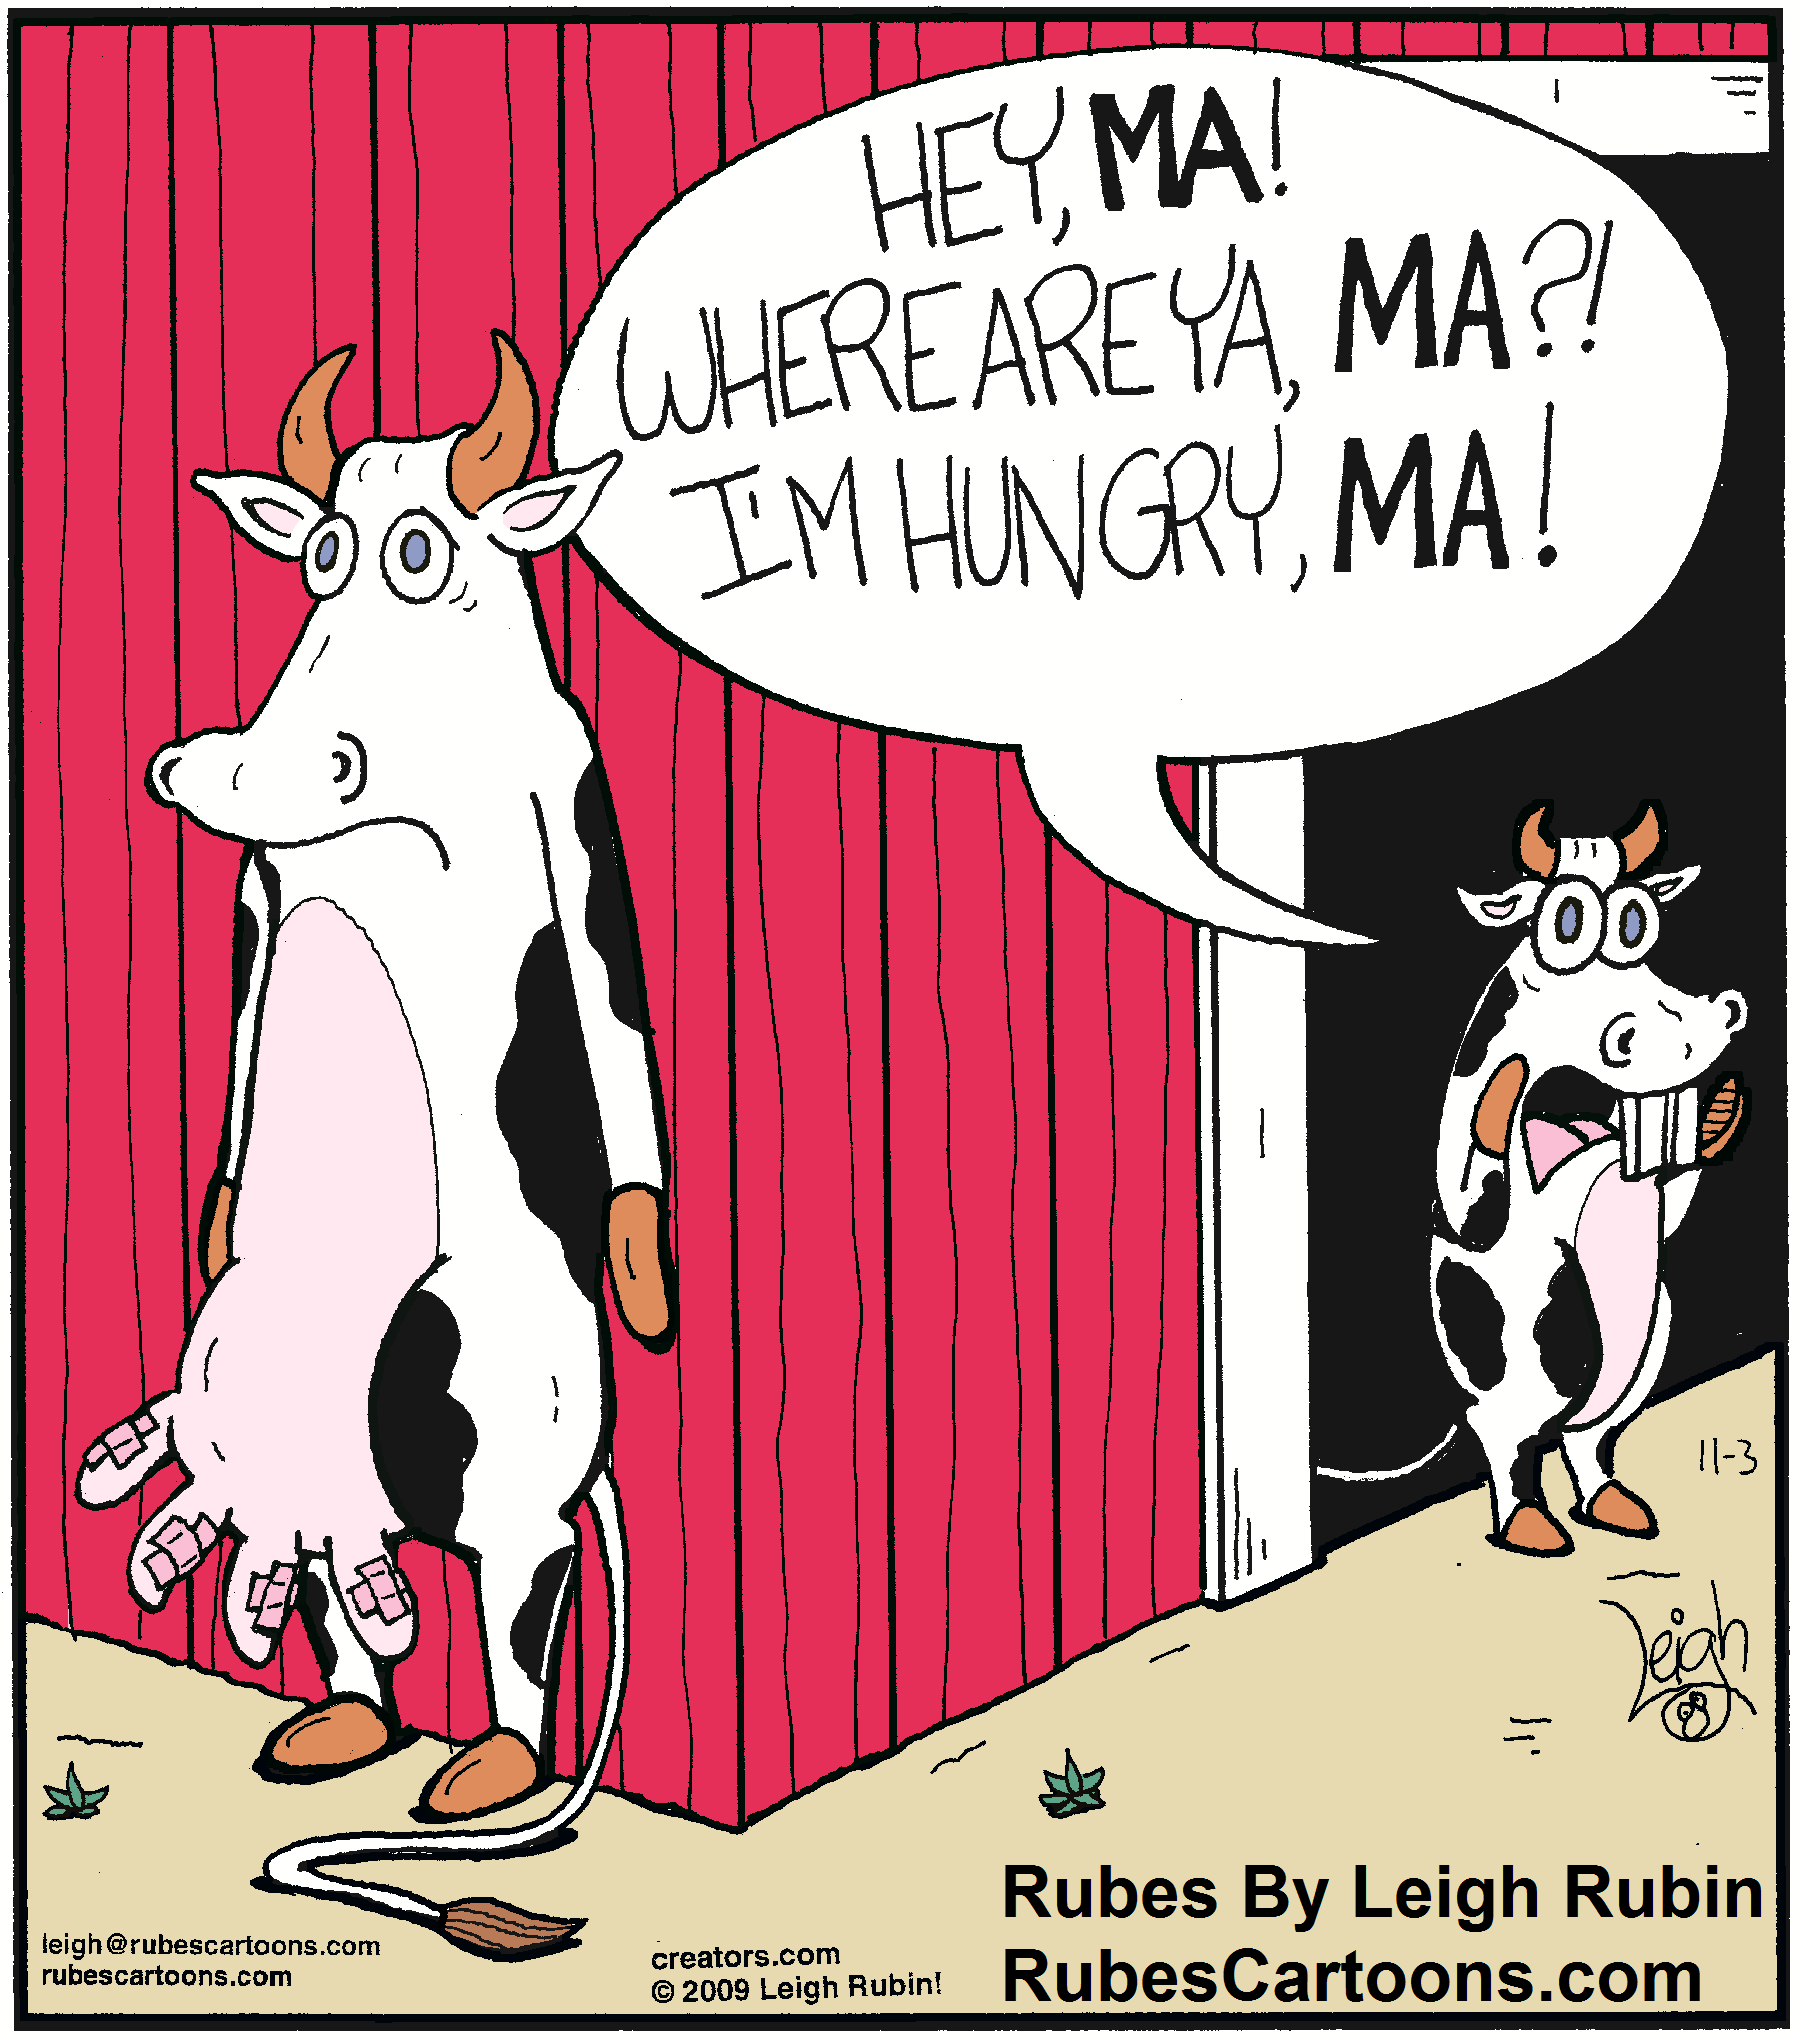 Oh my, the udder pain!